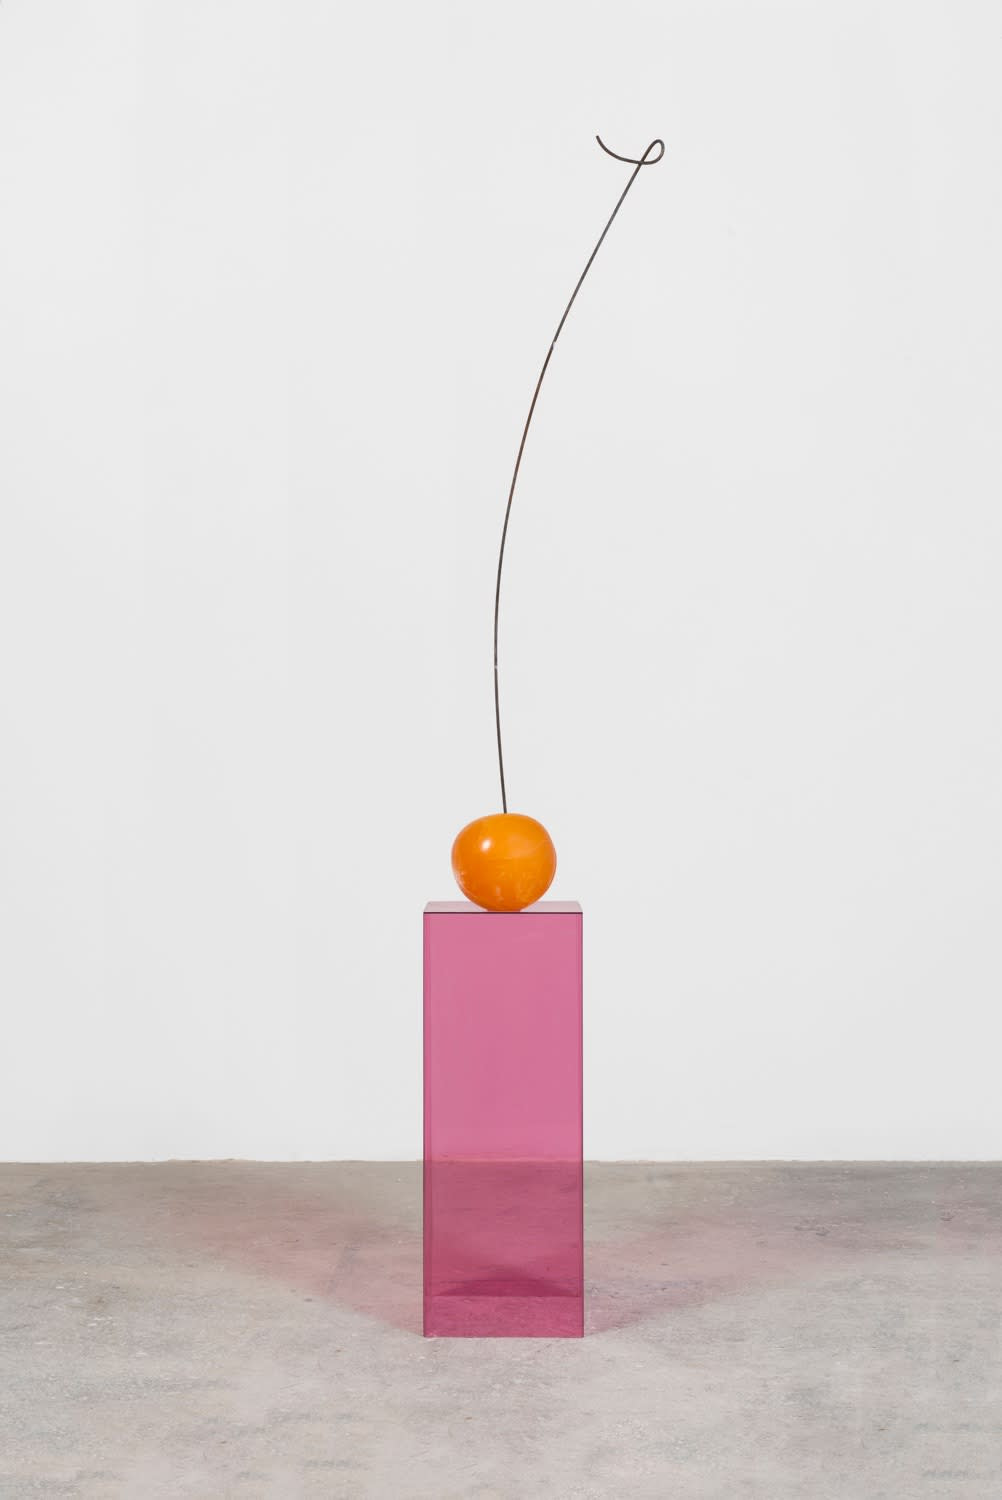 In this artwork by the artist Nevine Mahmoud, a sculpture depicting a cherry is placed on top of a pink-red translucent pedestal. The cherry sculpture is an orange-red color, and has a brown, very tall, slightly curved stem going upwards.